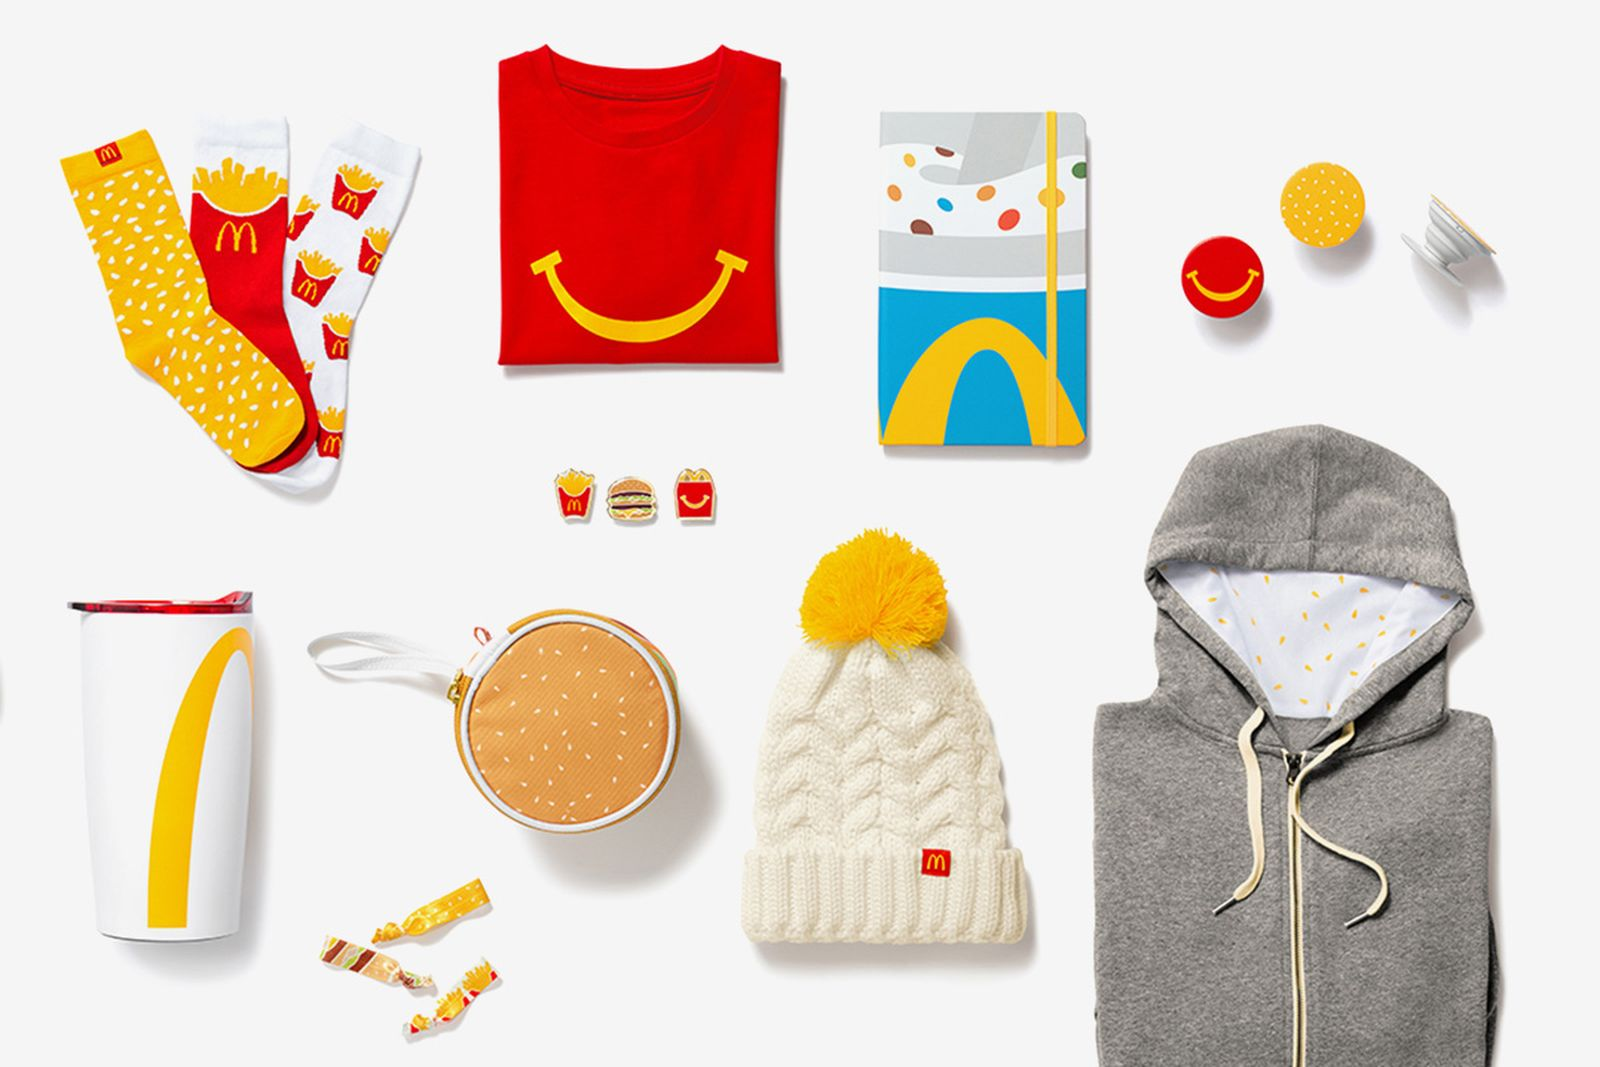 McDonalds Holiday Collection